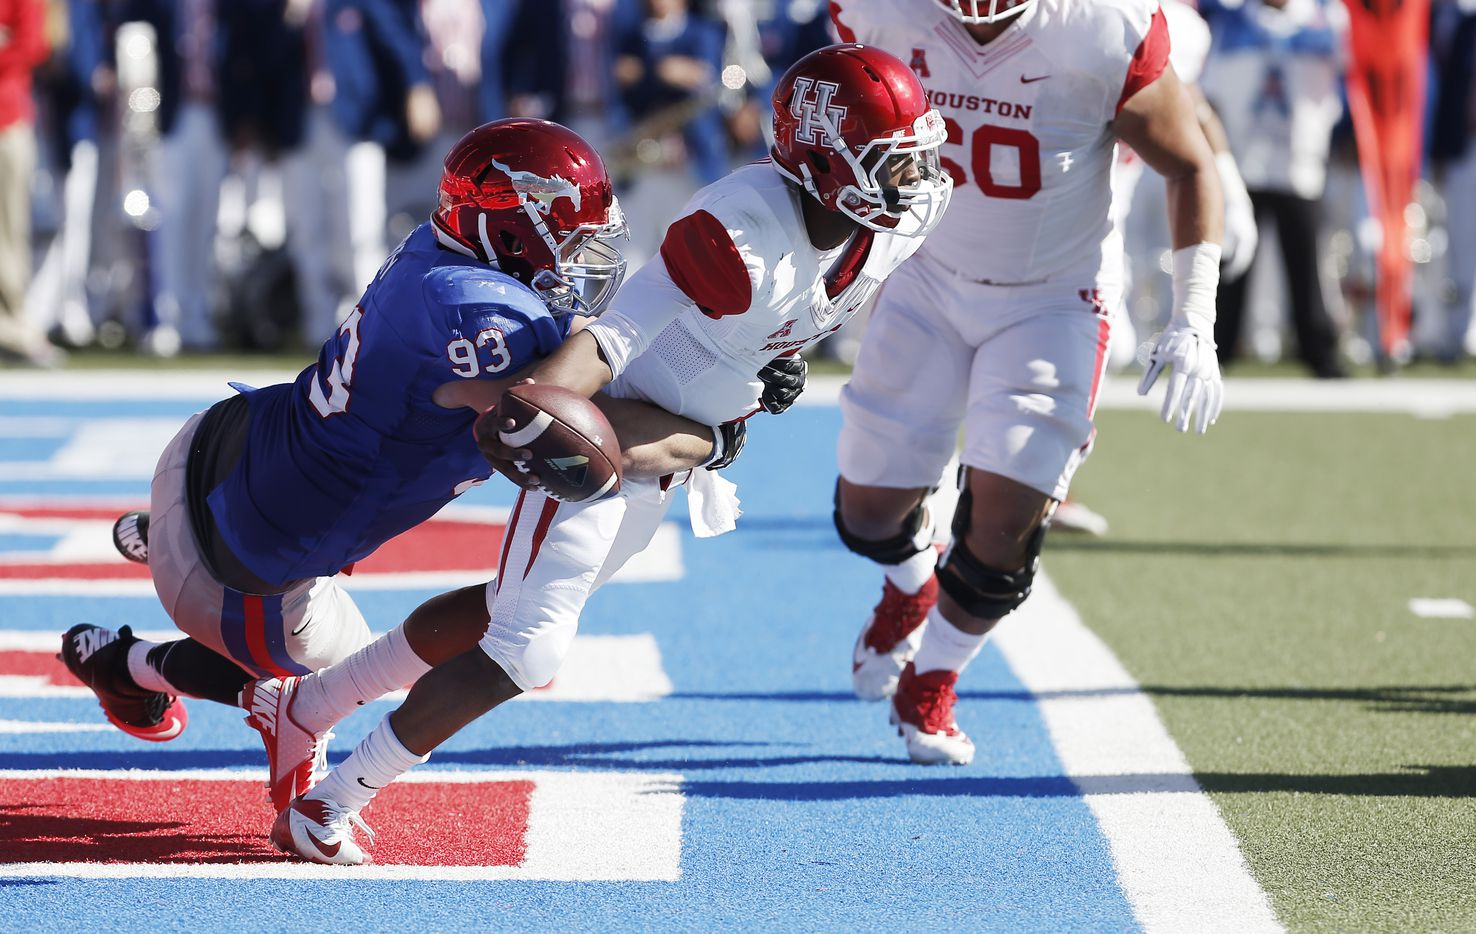 MASON GENTRY / Junior DT / 6-foot-6, 296 pounds / 2015 stats: 19 tackles, 2 TFLs / Once labeled the next Margus Hunt, Gentry has yet to make the impact one of the best players in recent SMU history made. But there is potential. Gentry started all 12 games last season but really needs to improve his production.